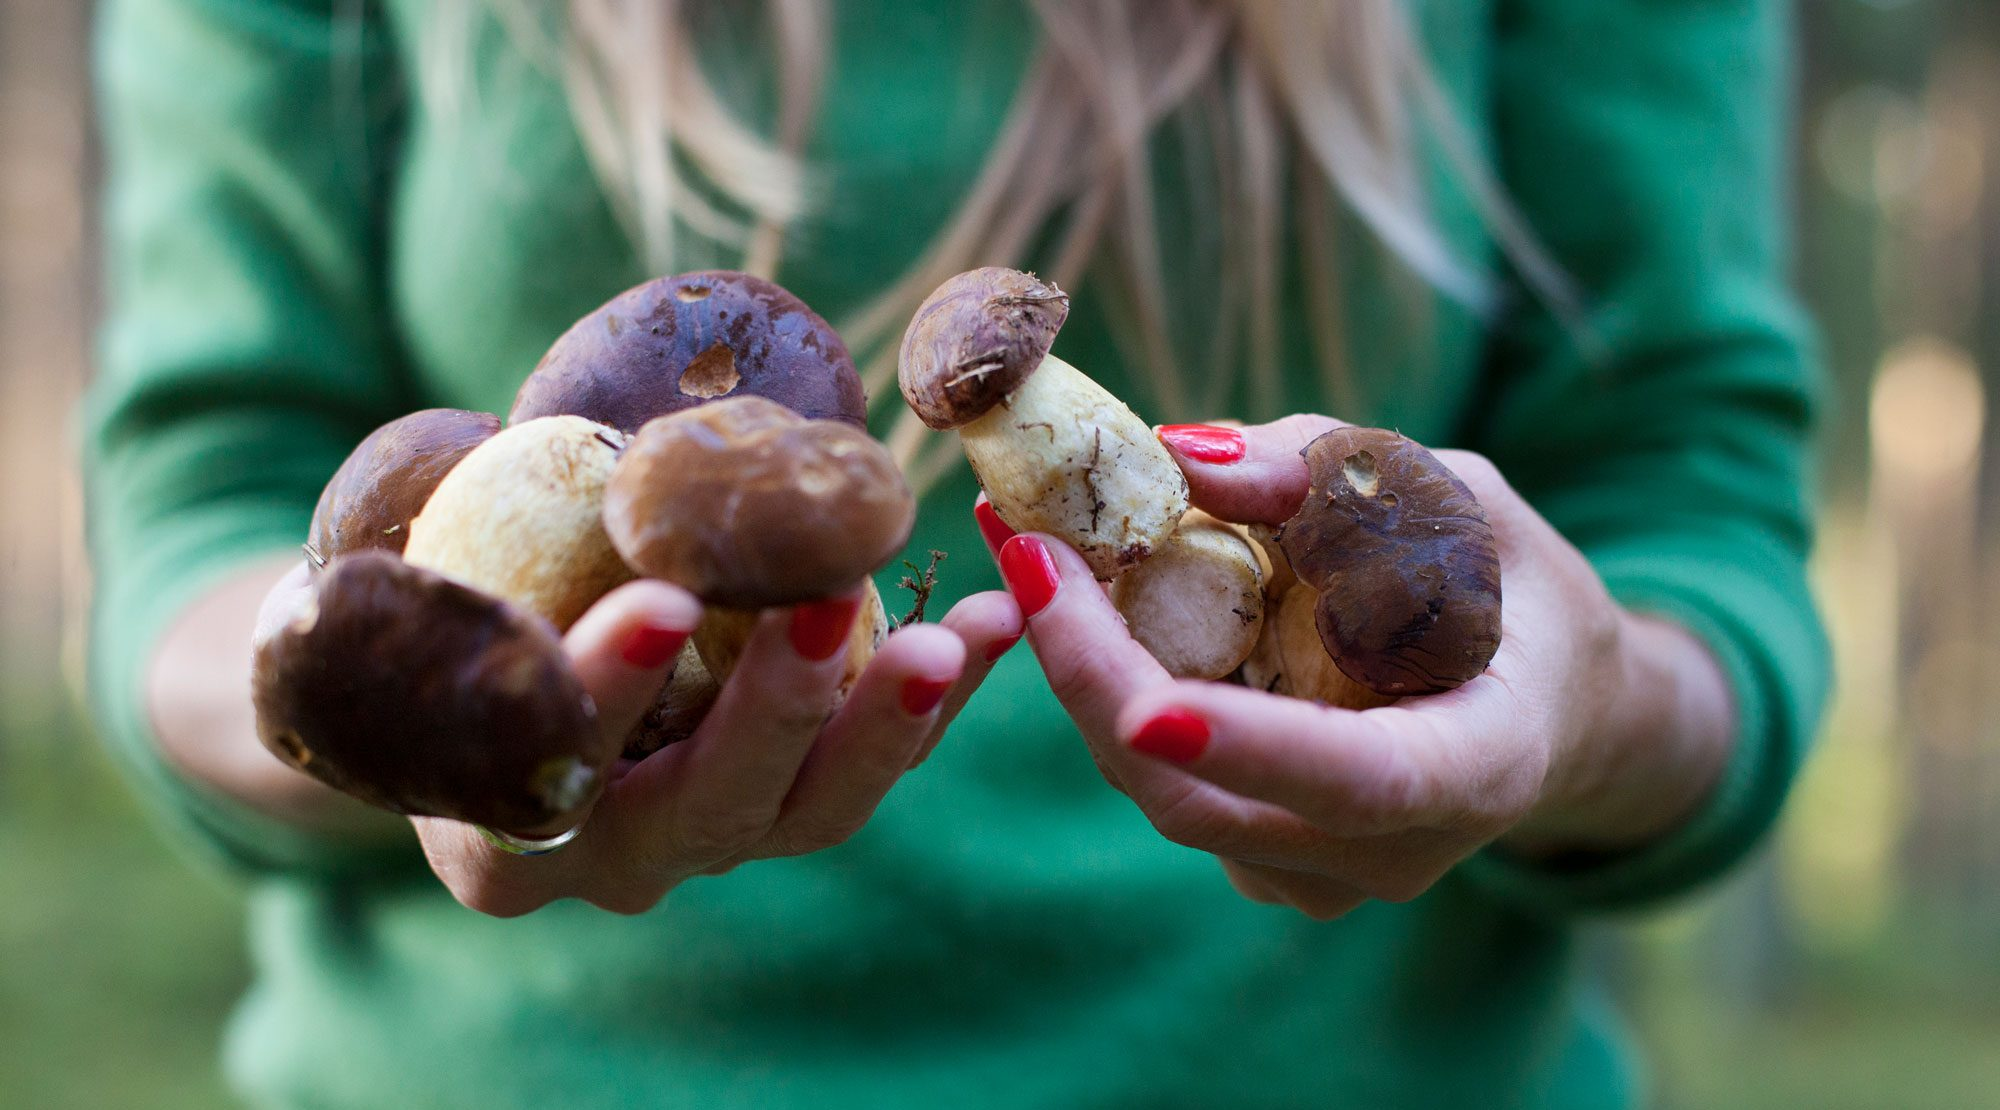 A person holding a handful of mushrooms.